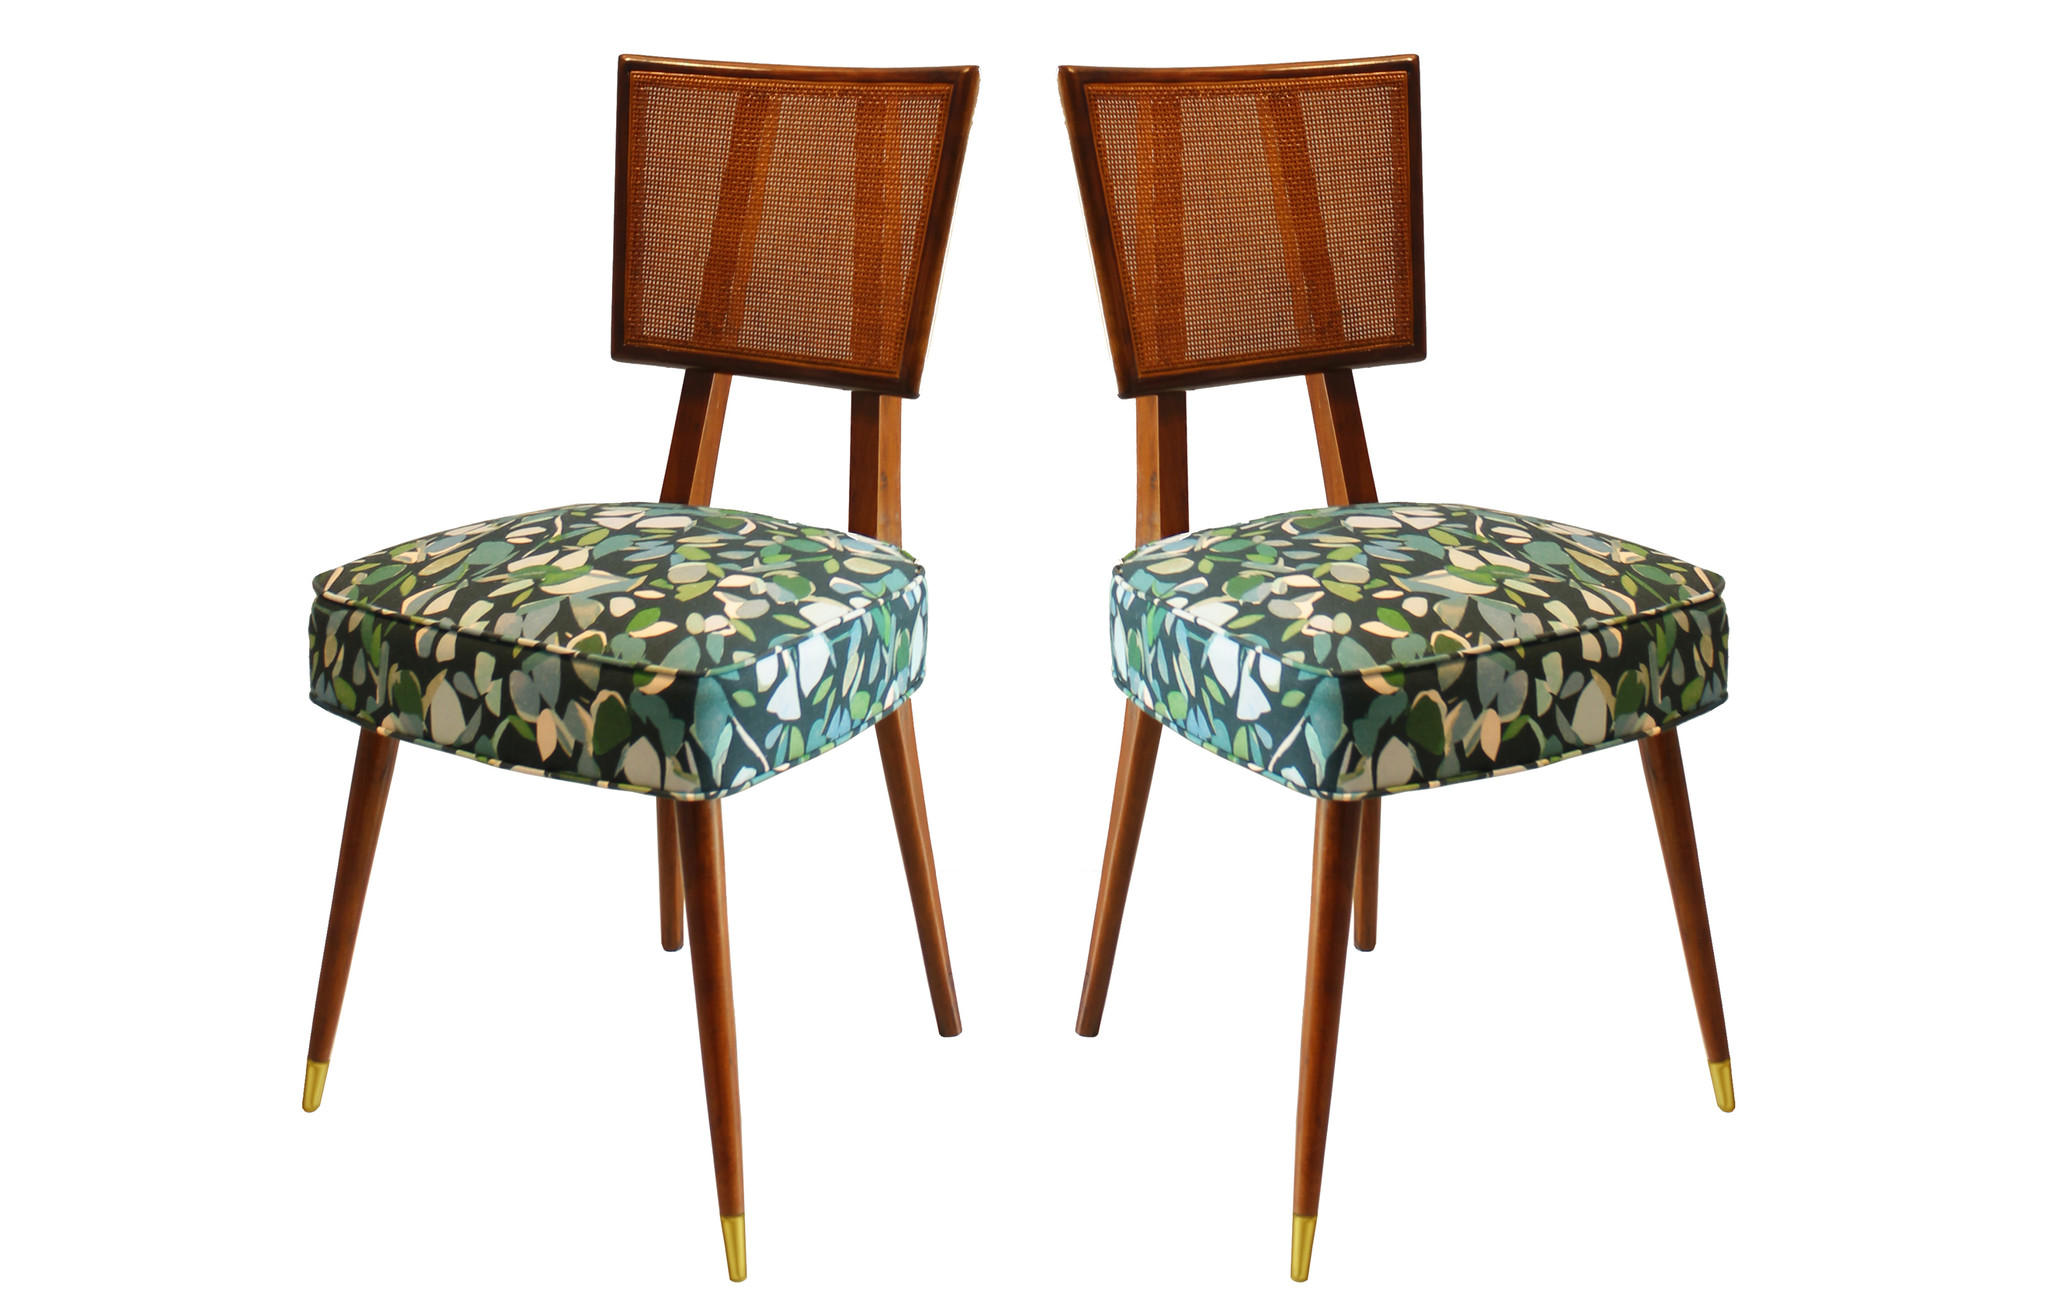 Remarkable Midcentury Dining Chairs In The Manner Of Dunbar Set Of 6 Ibusinesslaw Wood Chair Design Ideas Ibusinesslaworg